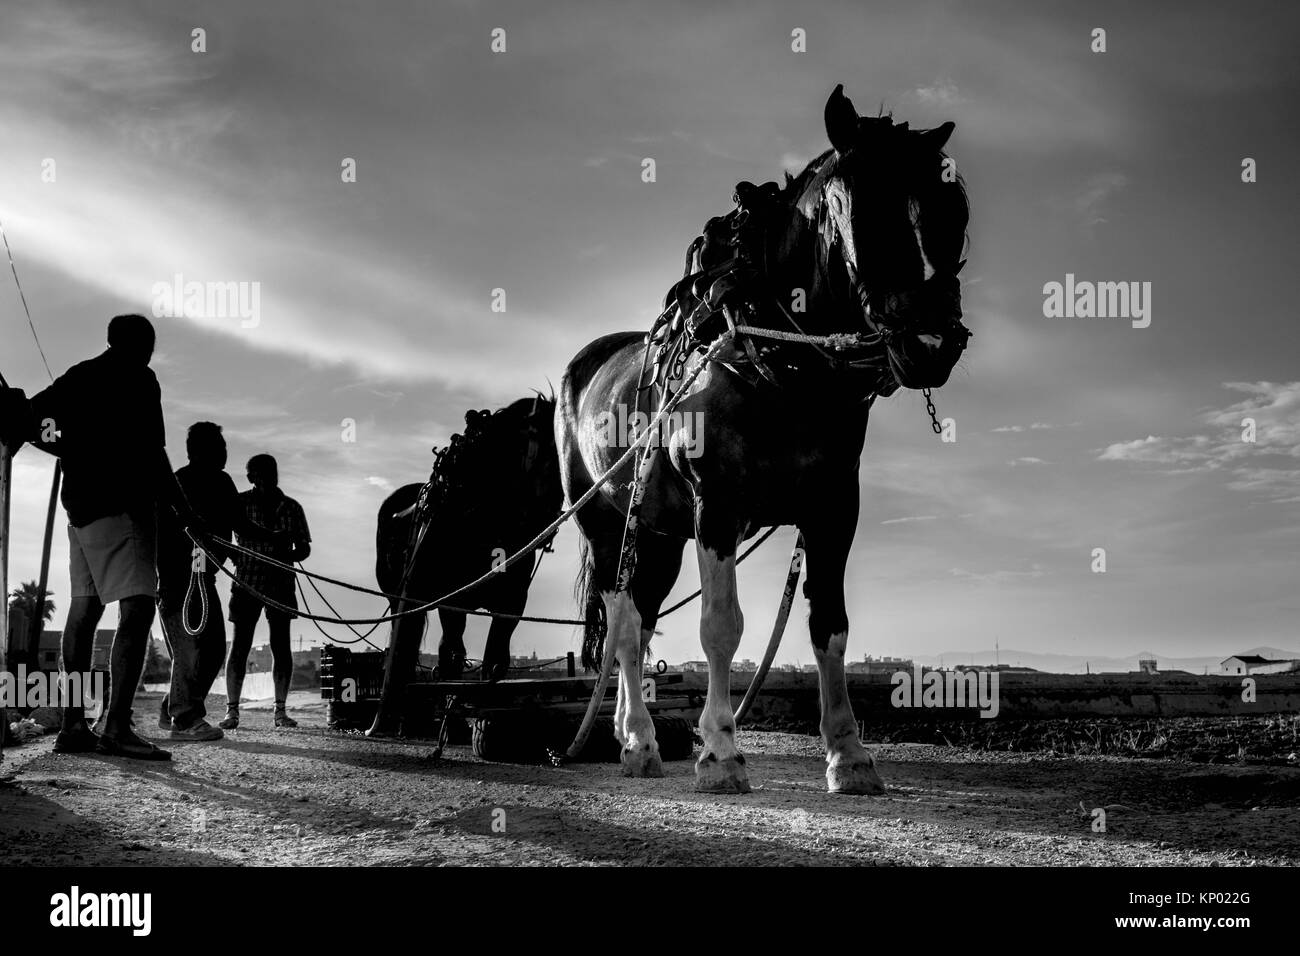 horses drag in the orchard of Valencia - Stock Image